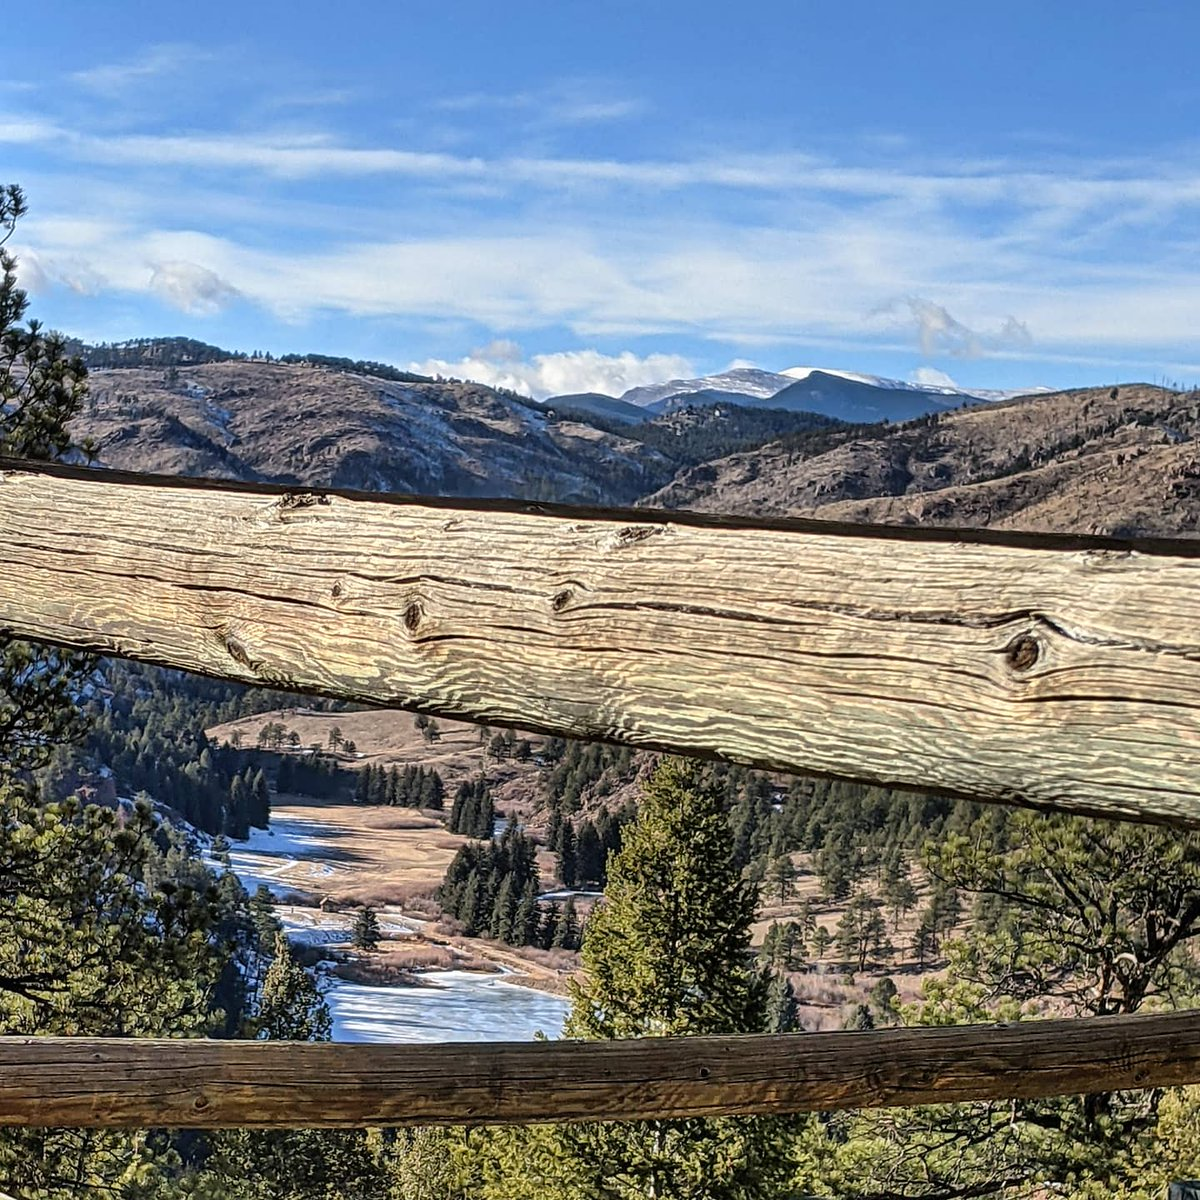 Hiked to the observatory at PVR park today. The views were amazing!   @JeffcoOpenSpace #hiking #whereihike #outside #mountains #Colorado